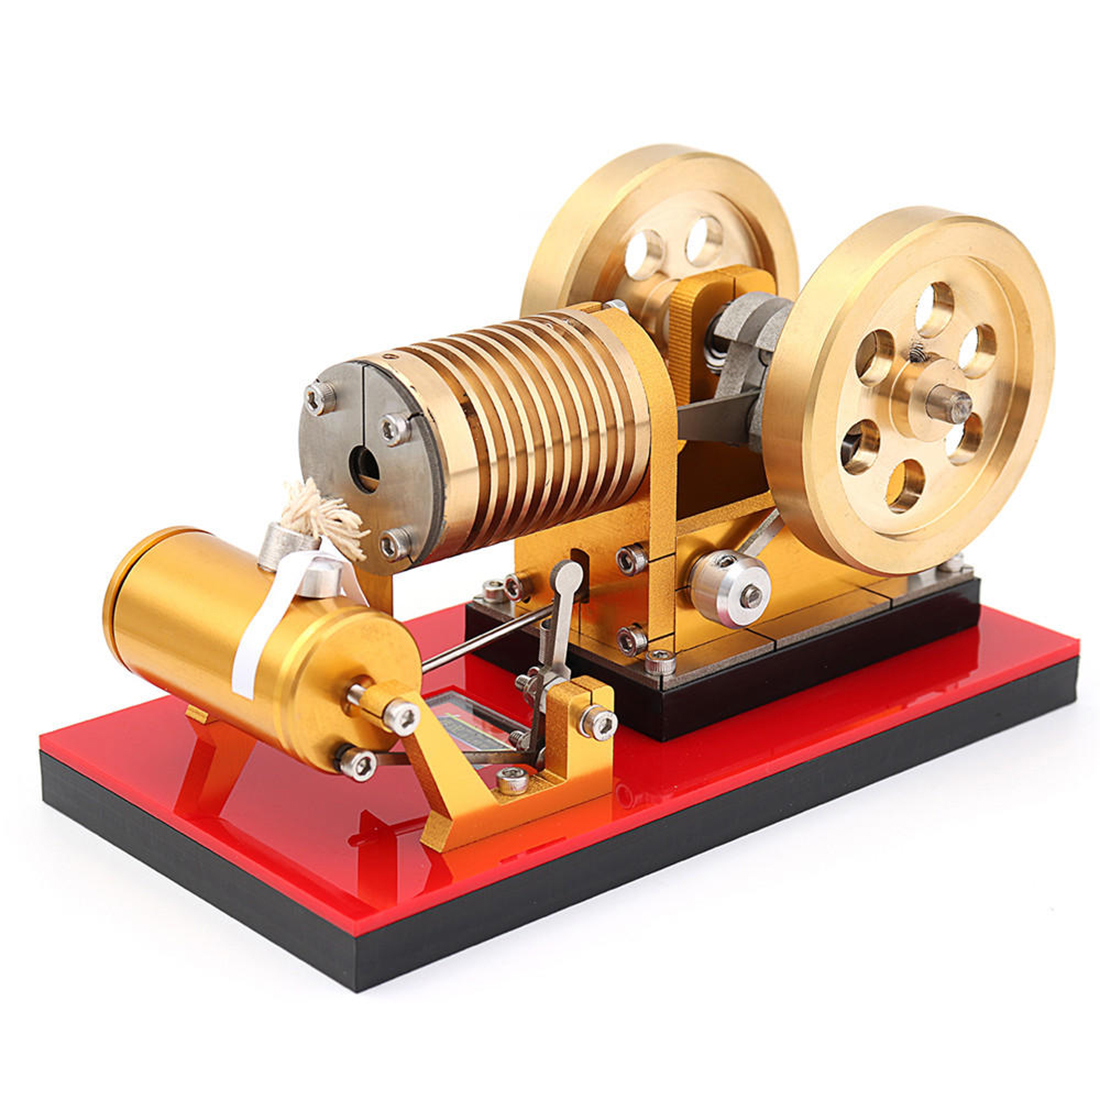 Suction Fire Type Stirling High-end Professional Edition Pure Copper Air Cylinder Heat Energy Engine Model Science Toy 2019Suction Fire Type Stirling High-end Professional Edition Pure Copper Air Cylinder Heat Energy Engine Model Science Toy 2019